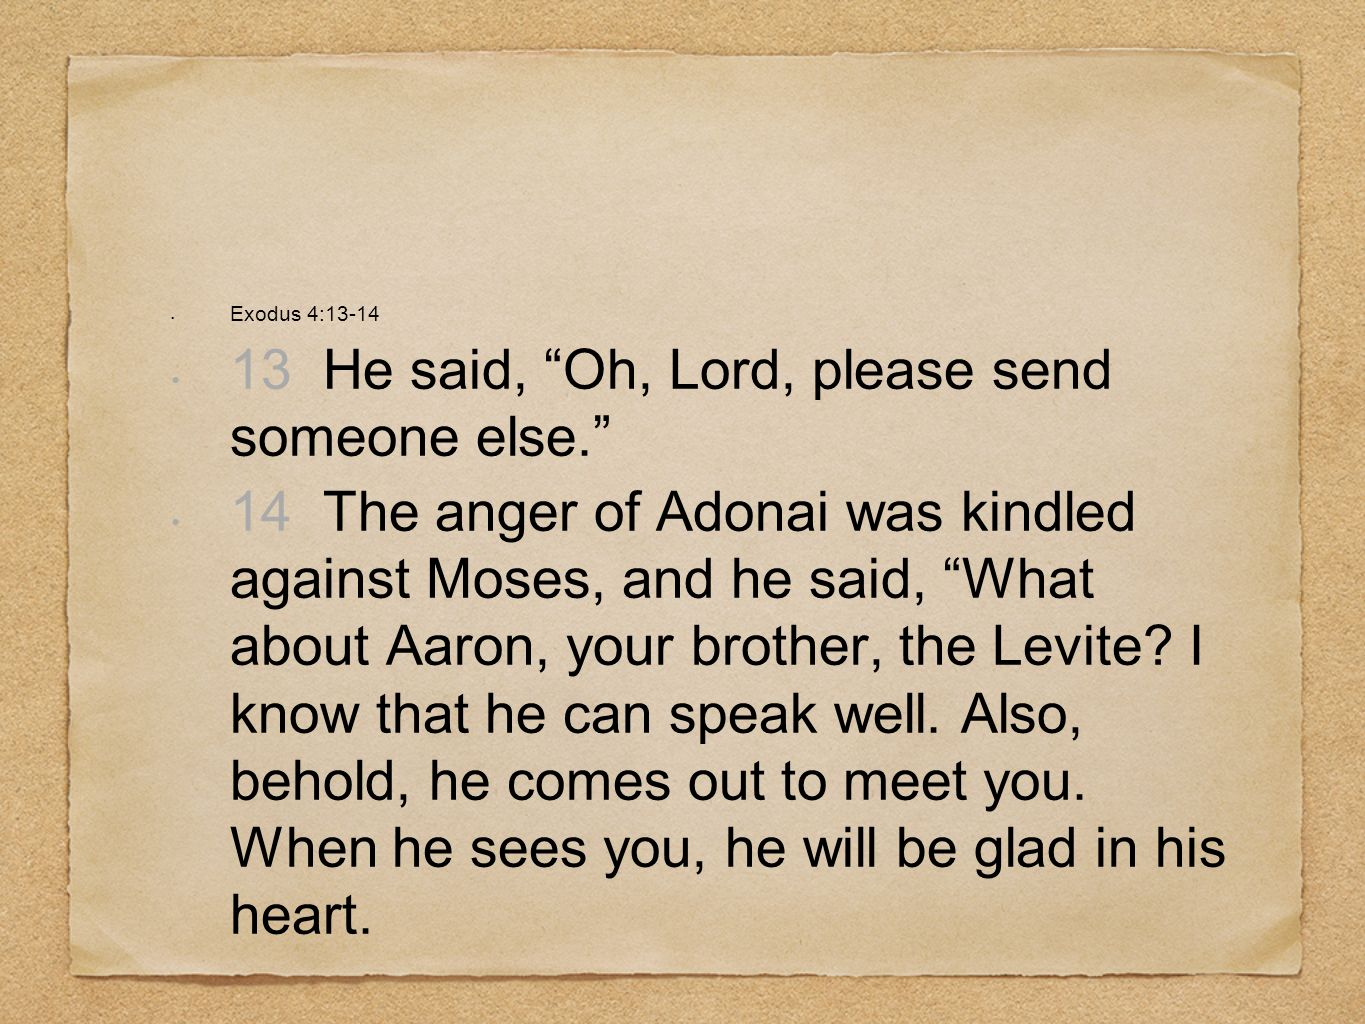 13 He said, Oh, Lord, please send someone else.